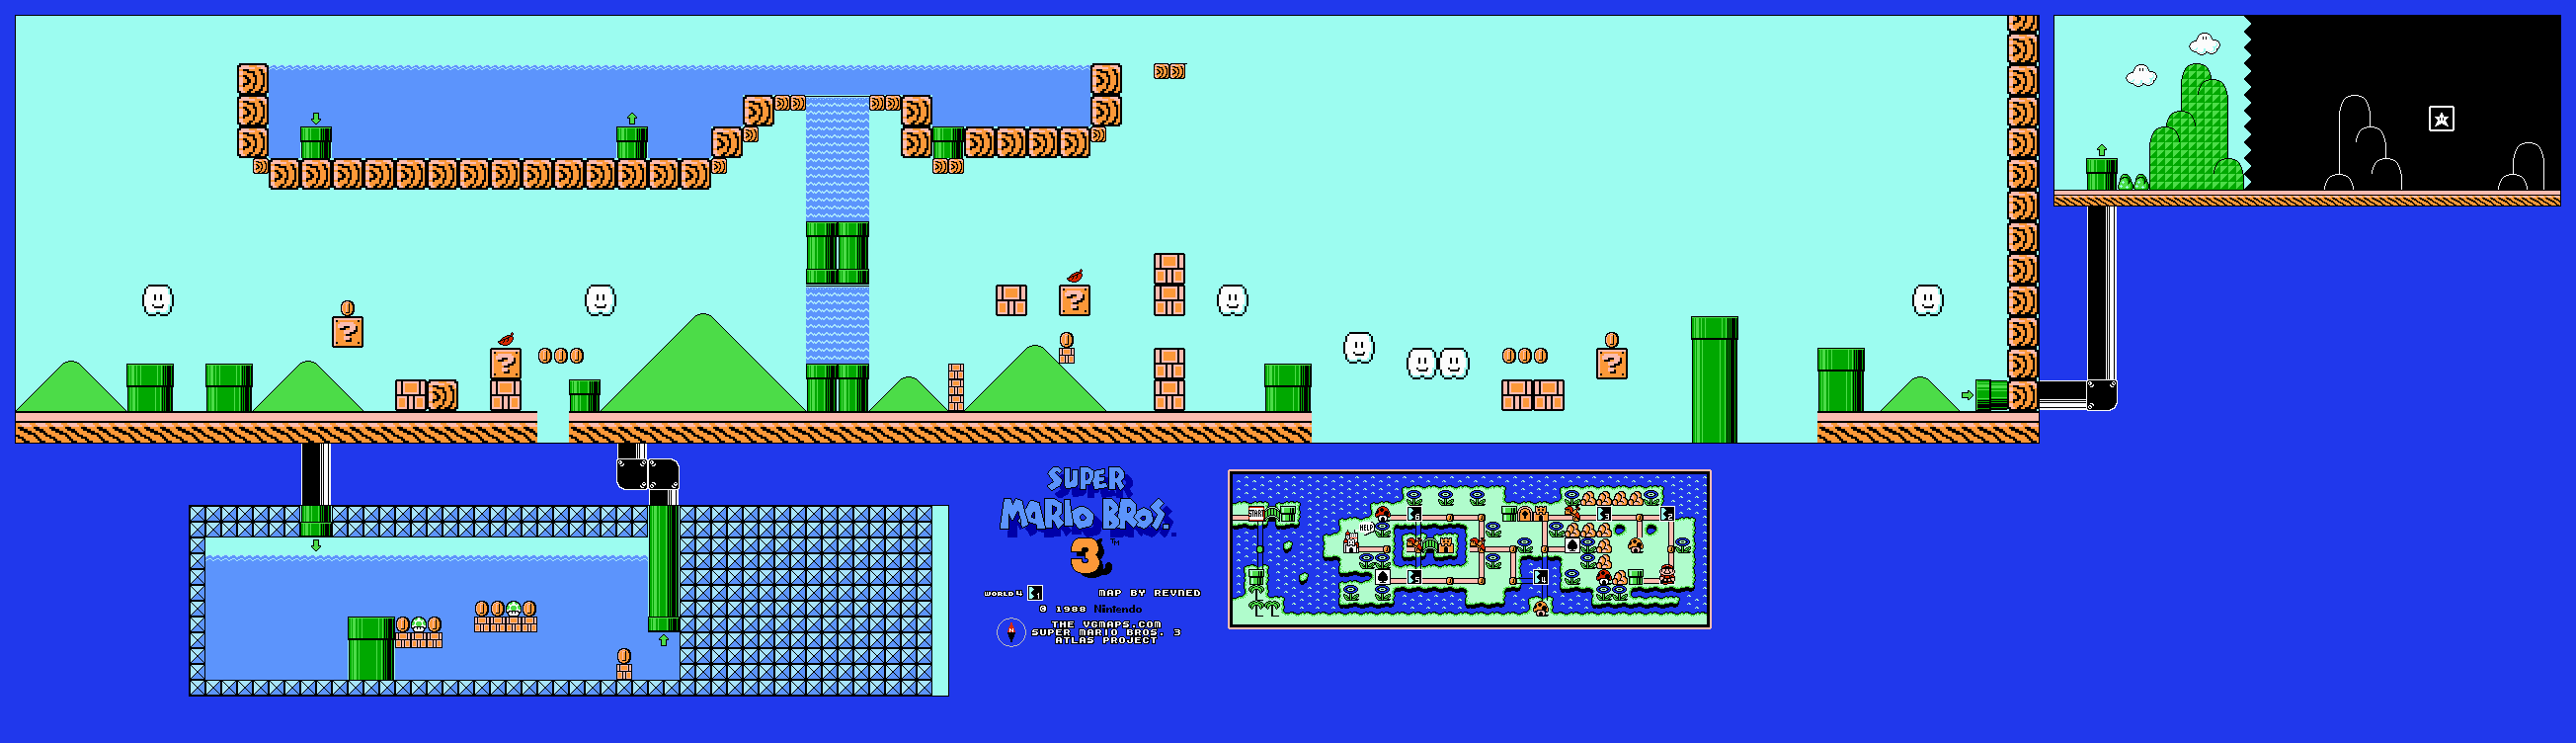 Revneds video game maps super mario bros 3 level 1 gumiabroncs